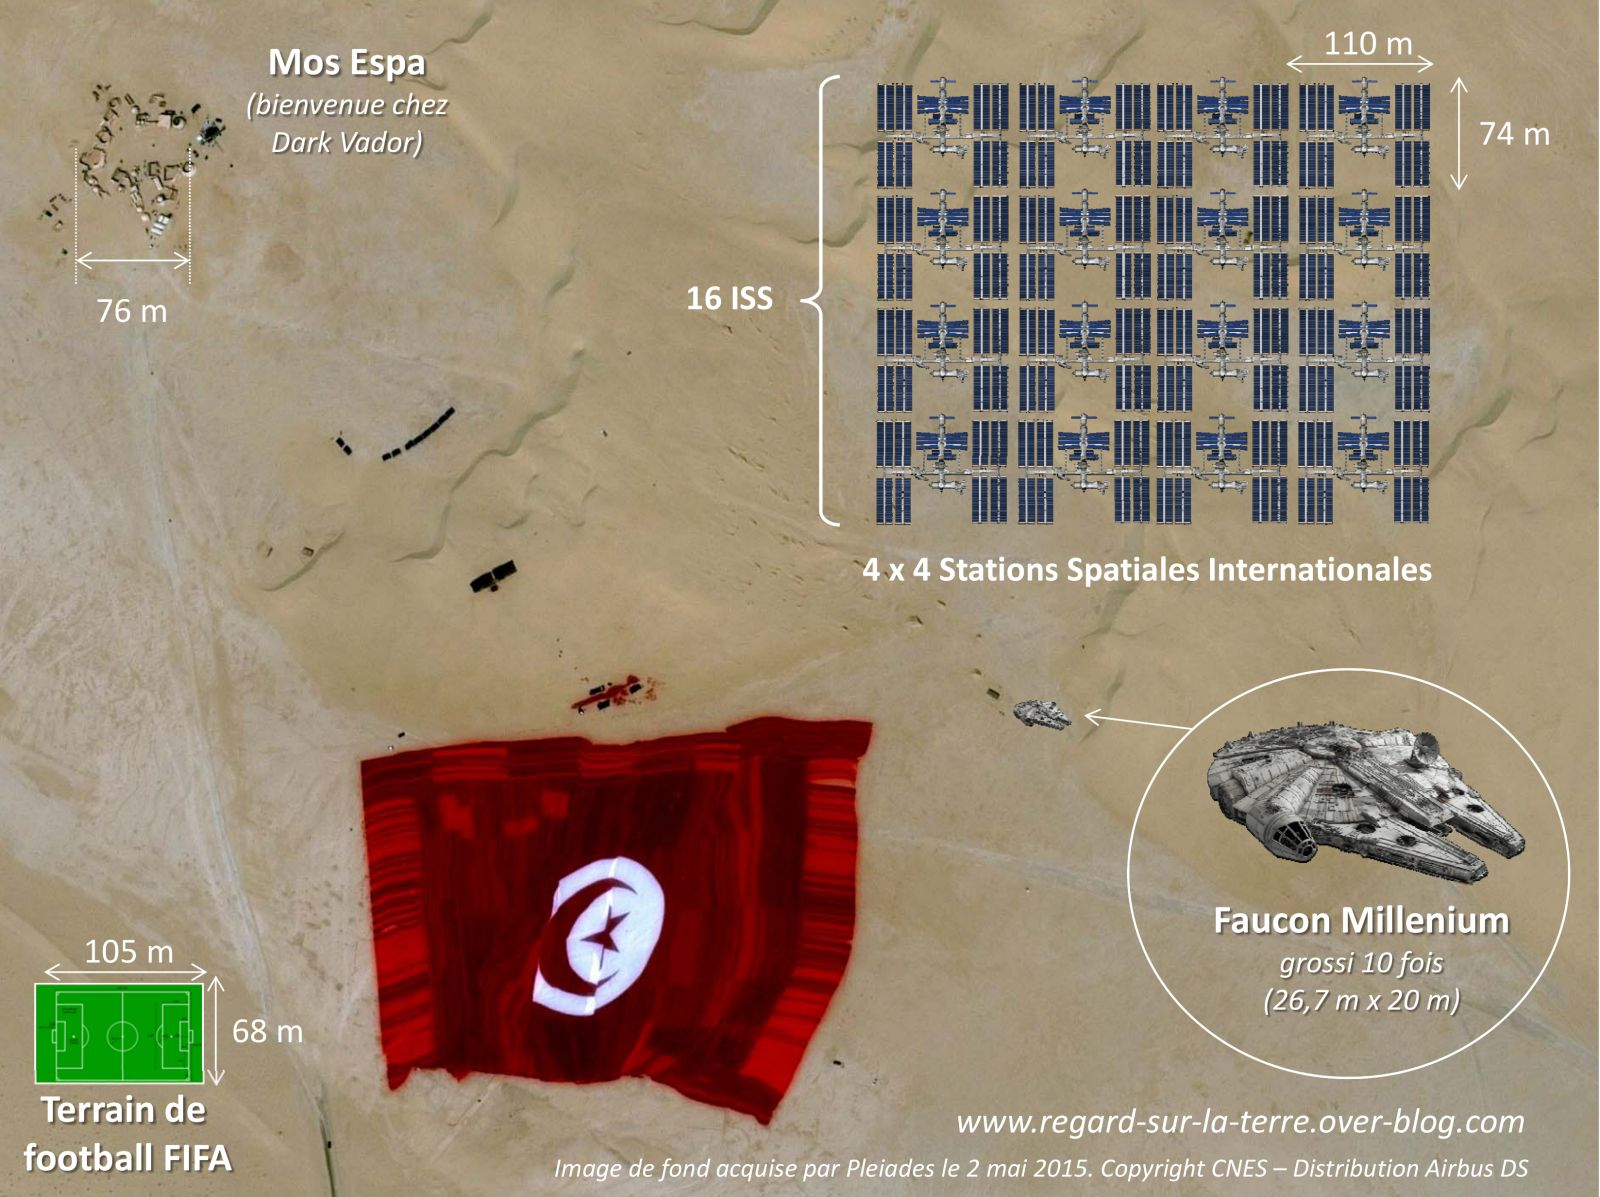 Tunisie - Record du plus grand drapeau - Guinness - Satellites Pléiades - Terrain de football - ISS - Faucon millénium - Mos Espa - Dark Vador - Star Wars - CNES - Airbus Defence and Space